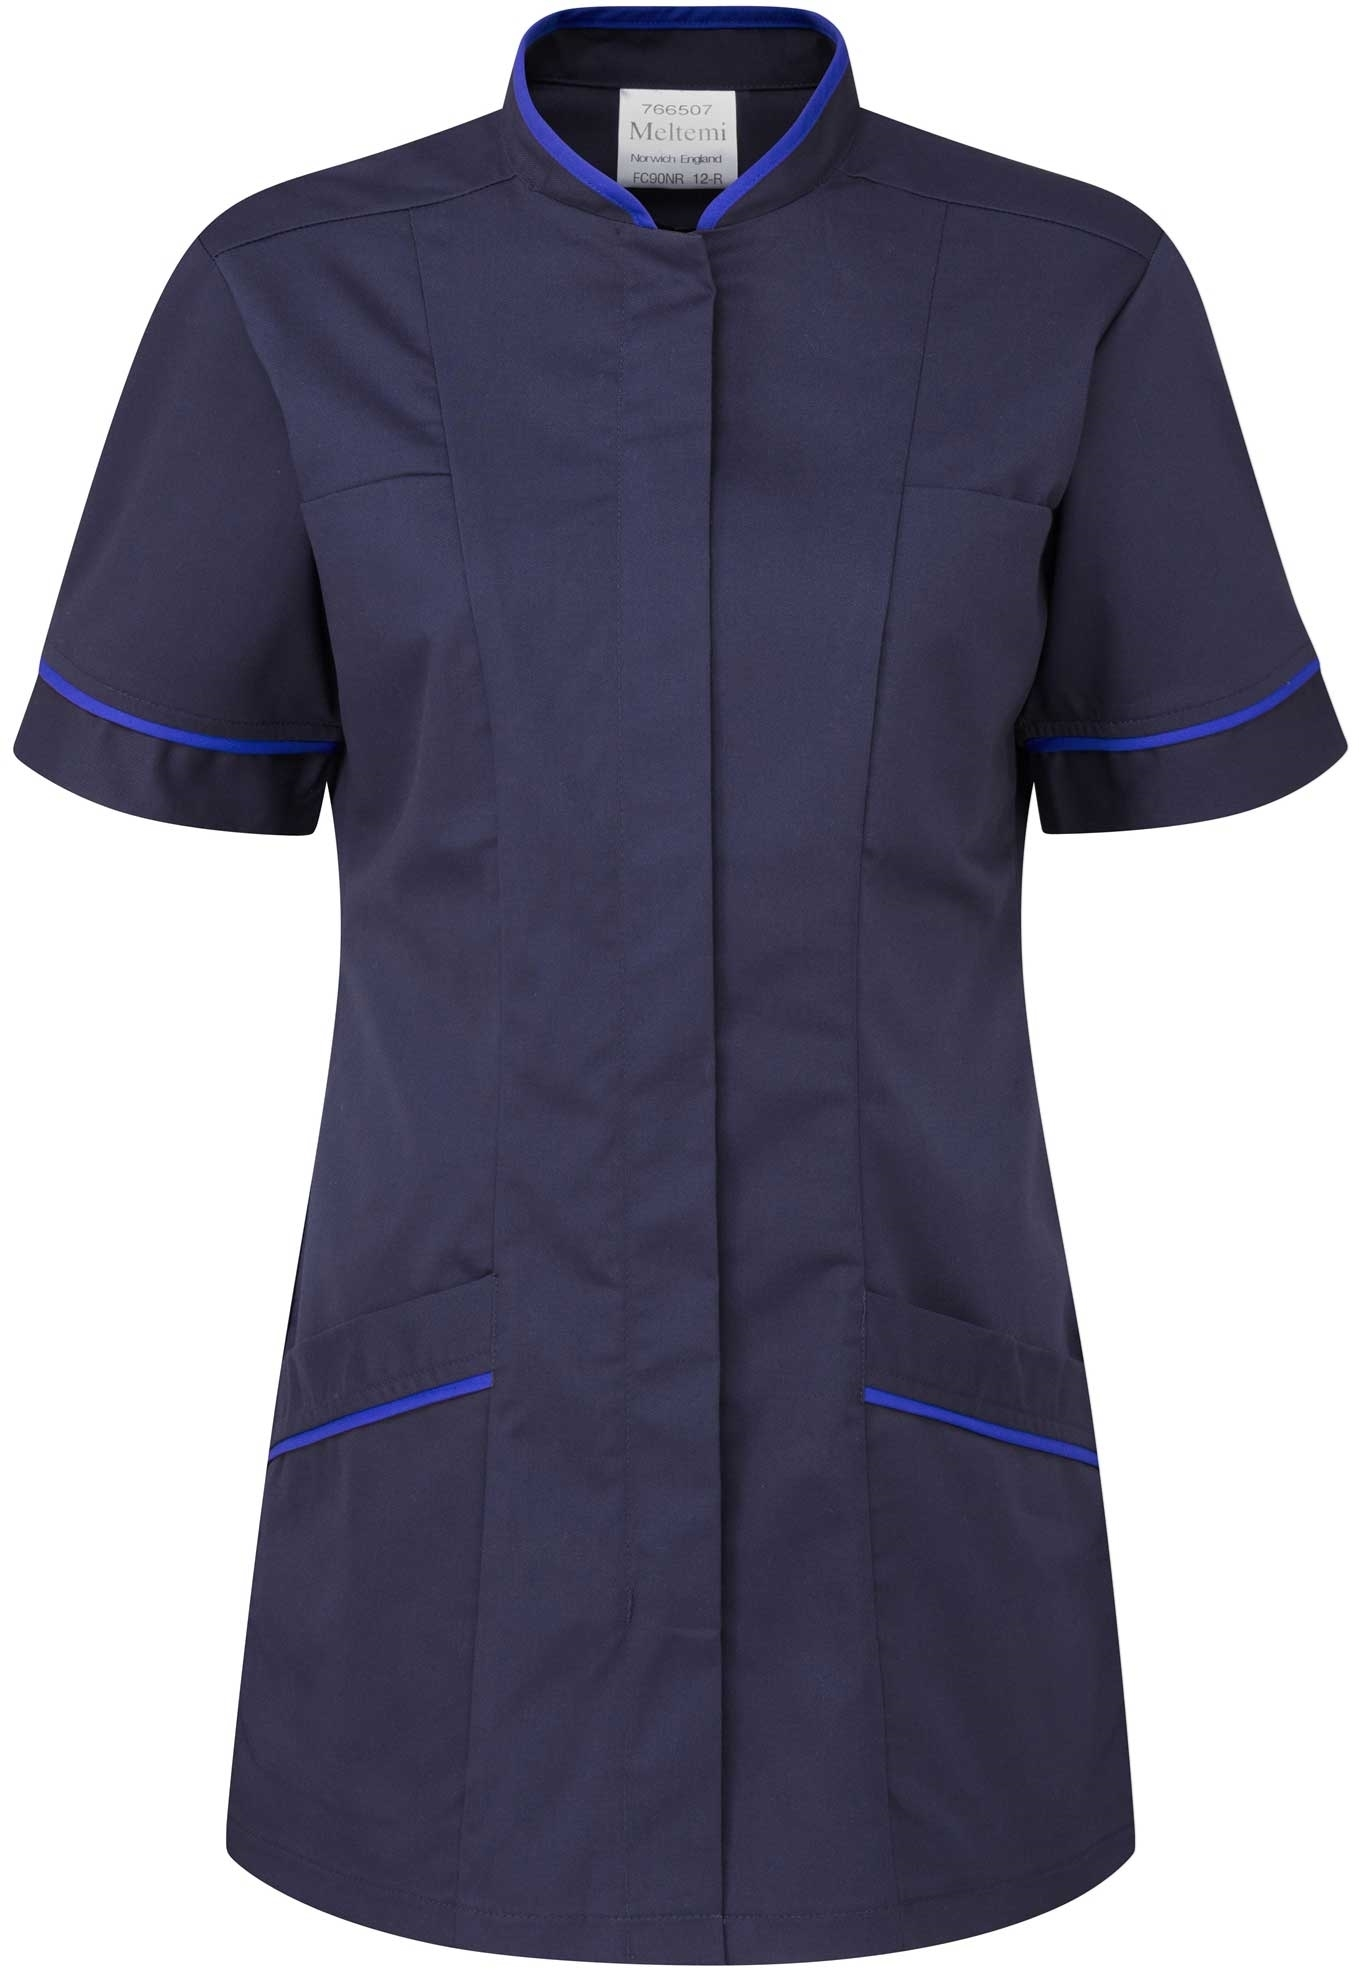 Picture of Professional Tunic - Navy/Royal Blue